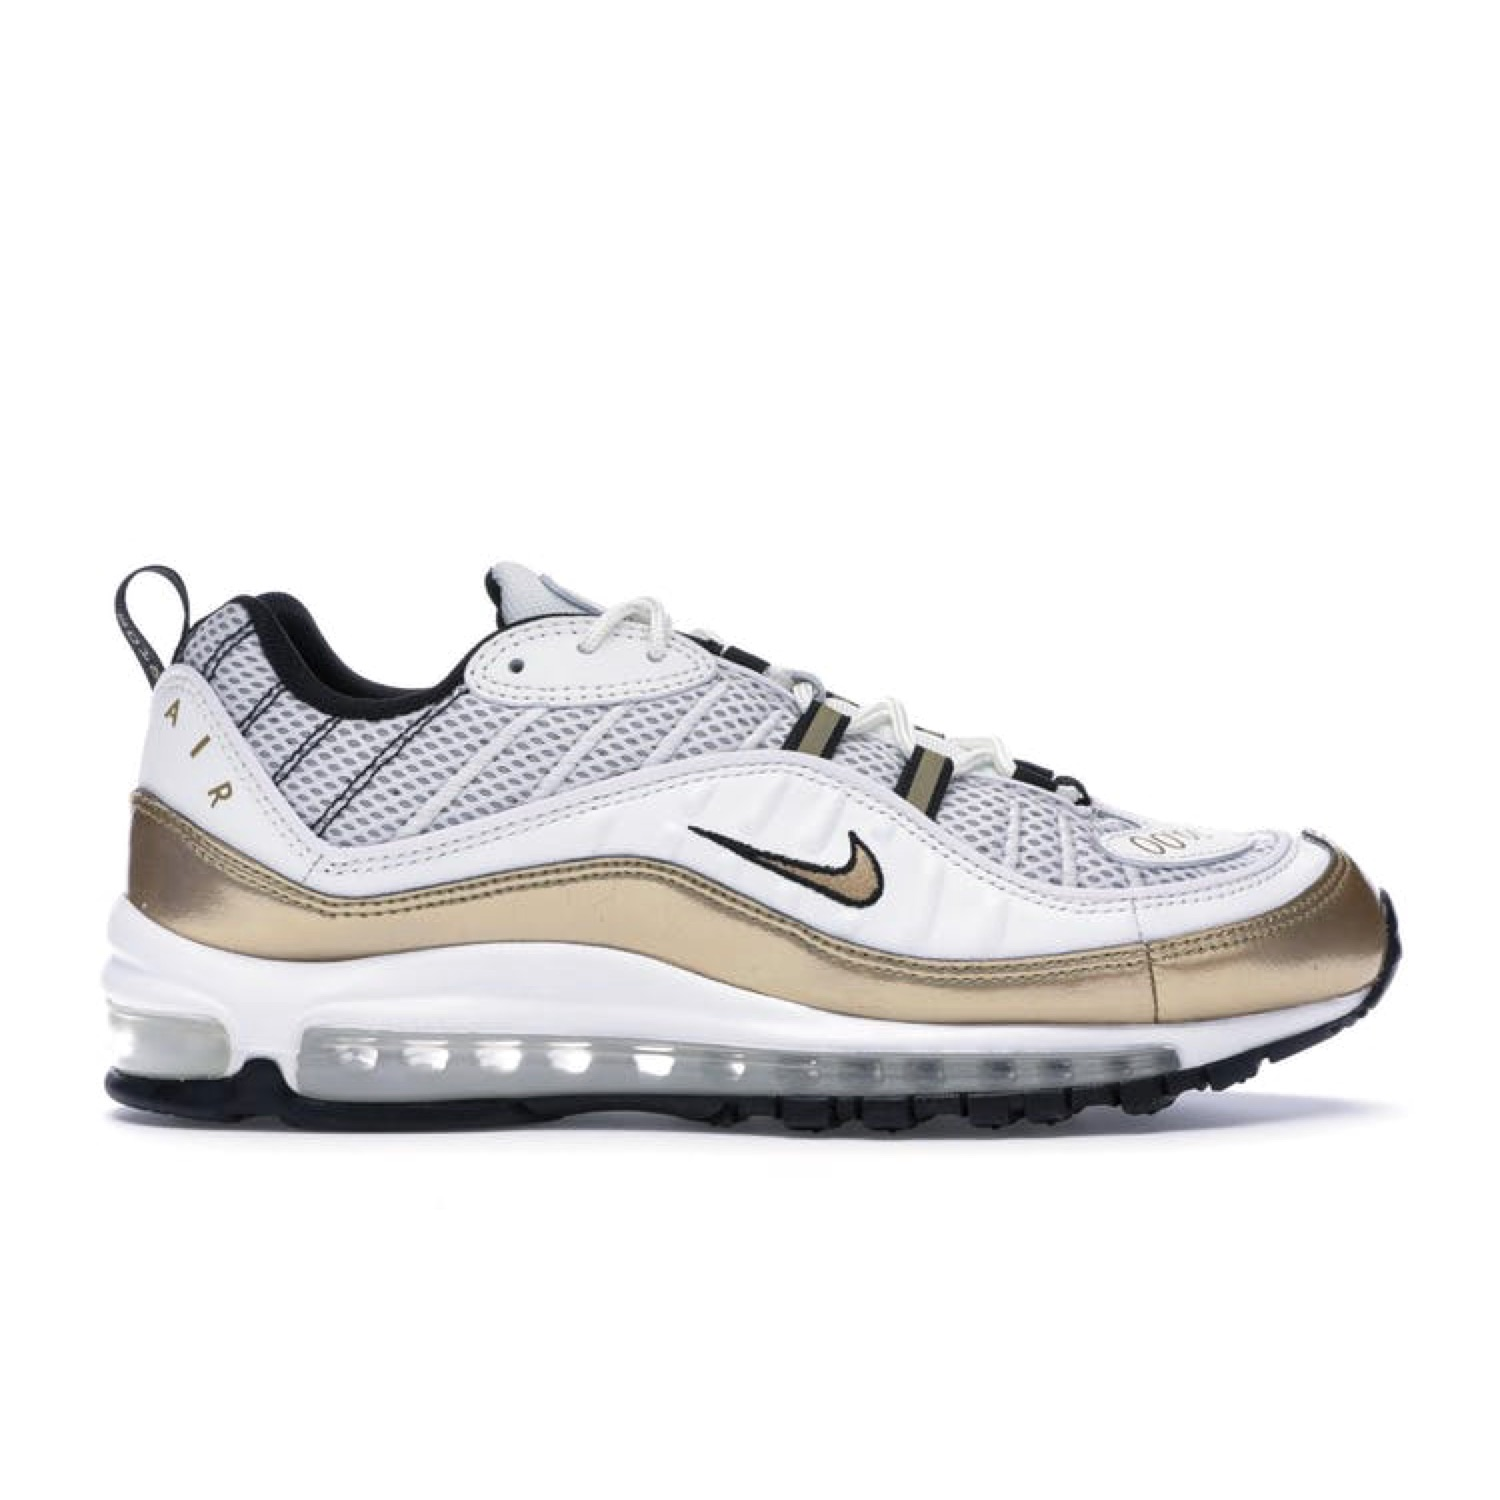 the best attitude 7c25f 89ca5 2018 Nike Air Max 98 Hyperlocal Size 9 Men